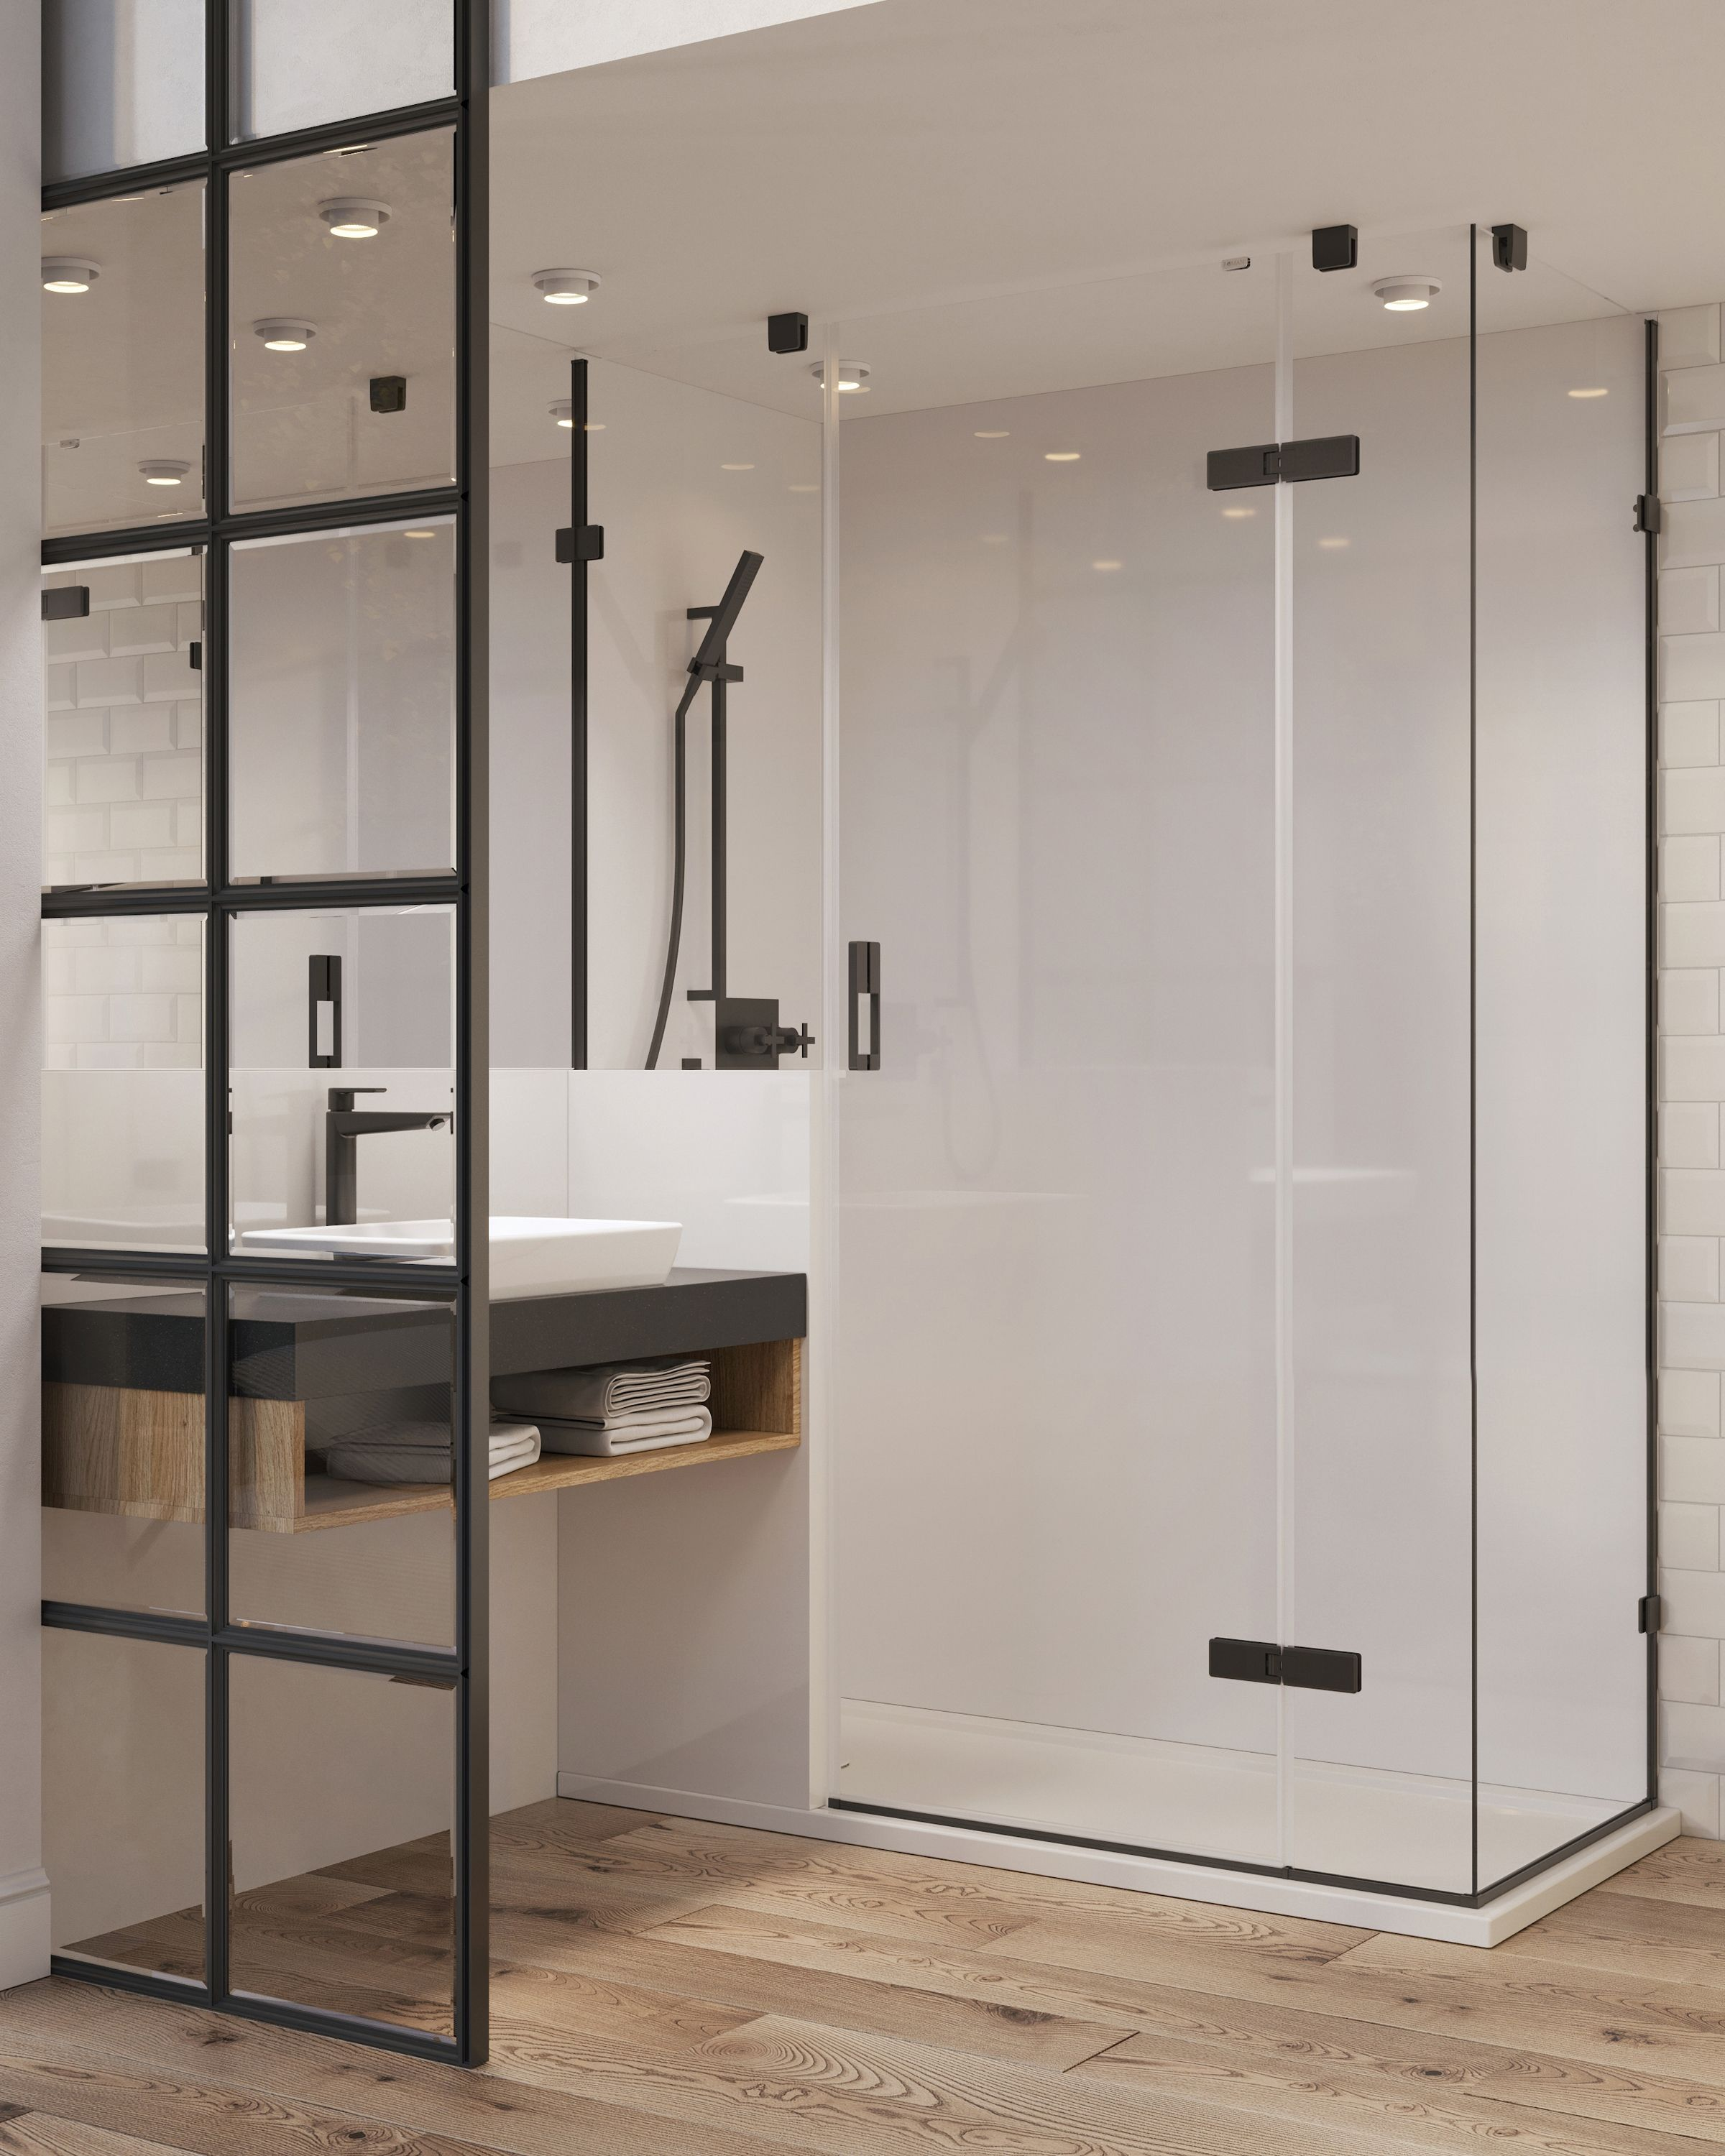 Another New Hotel Concept Signed Off And Agreed The Solid Surface Shower Tray Links To The H Shower Enclosure Minimalist Architecture Interior Design Projects